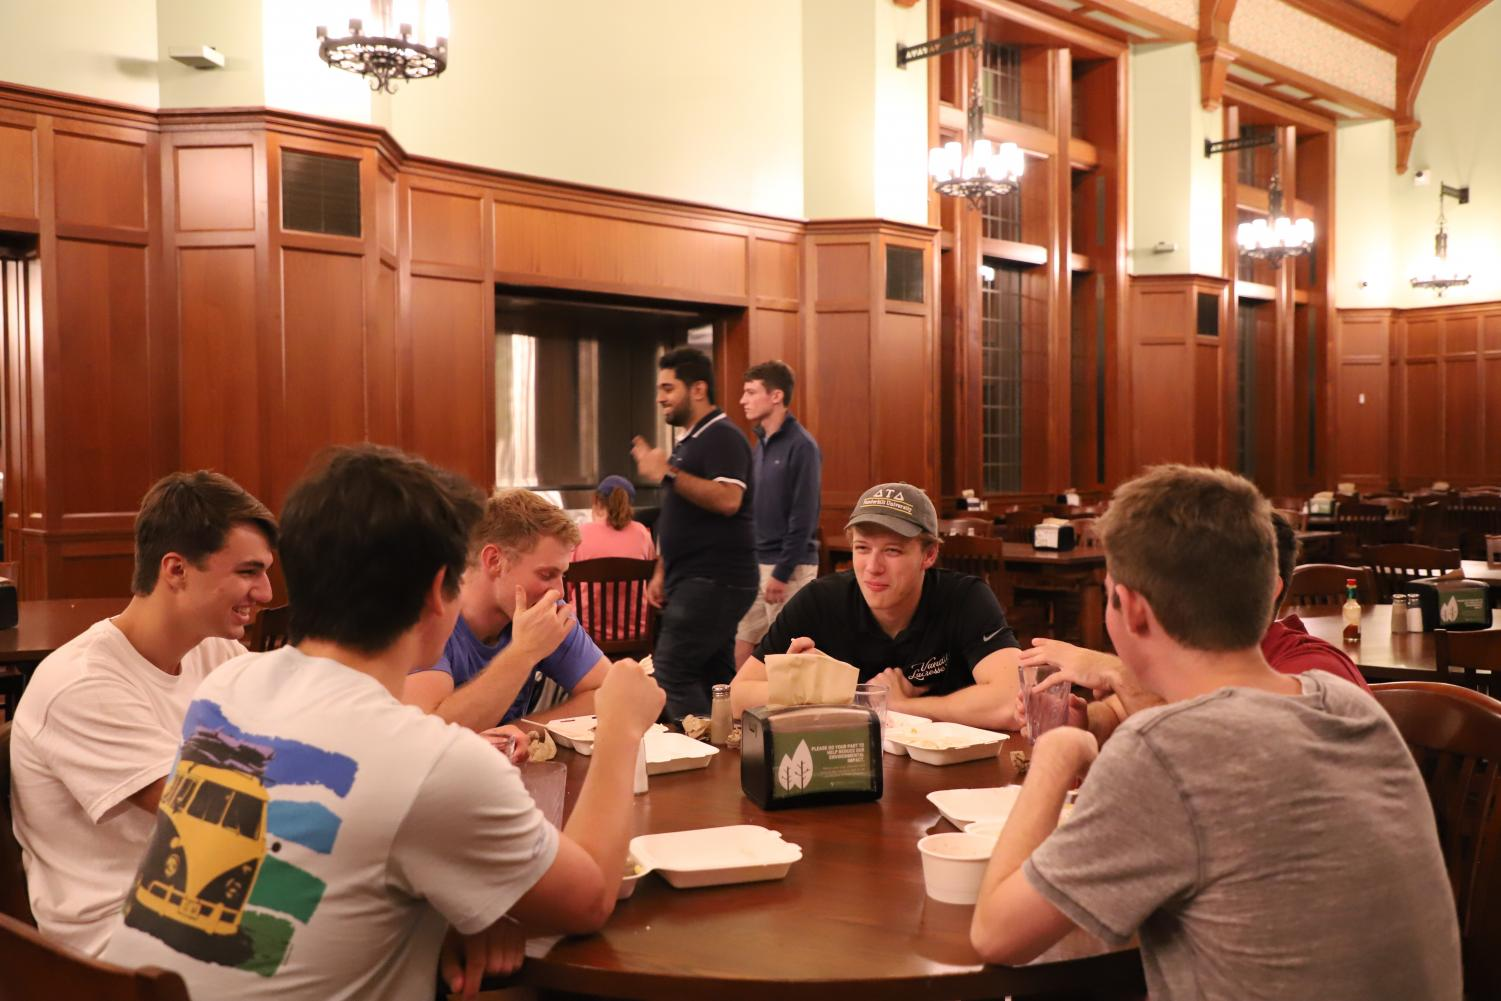 A group of students eating Late Night at EBI. (Photo by Justine Del Monte)